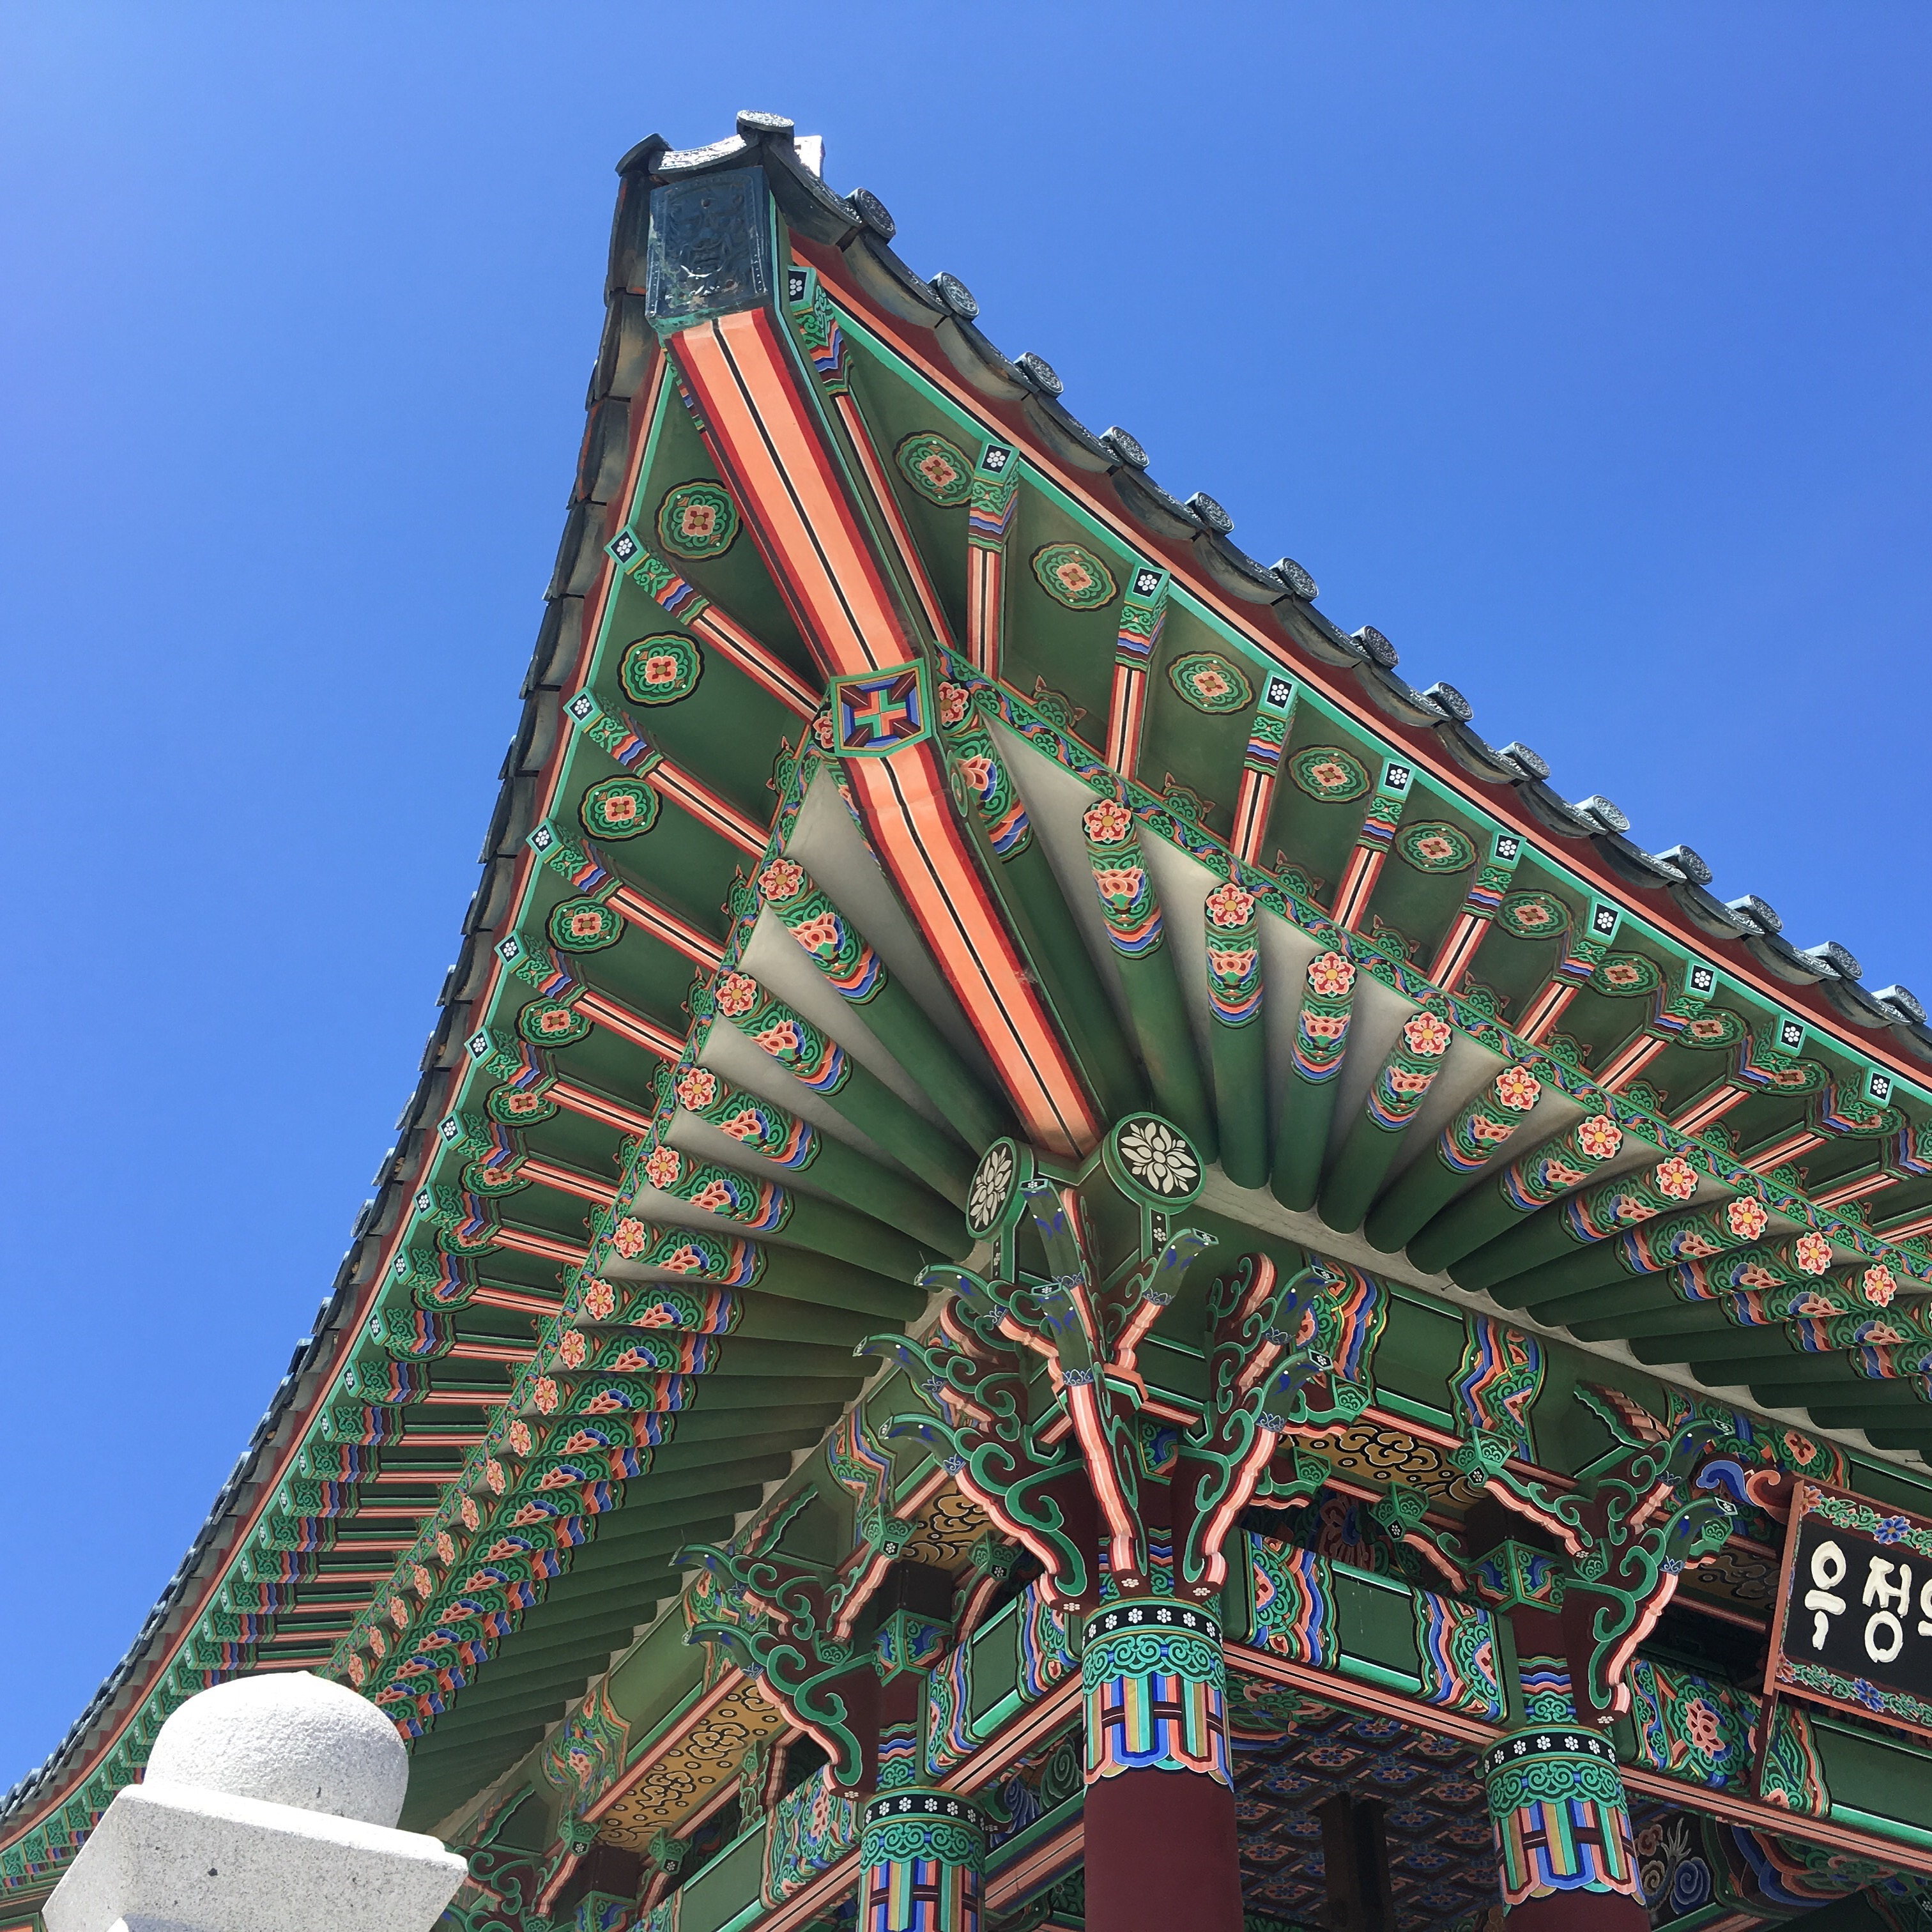 Things to do in San Pedro include visiting the Korean Friendship Bell.